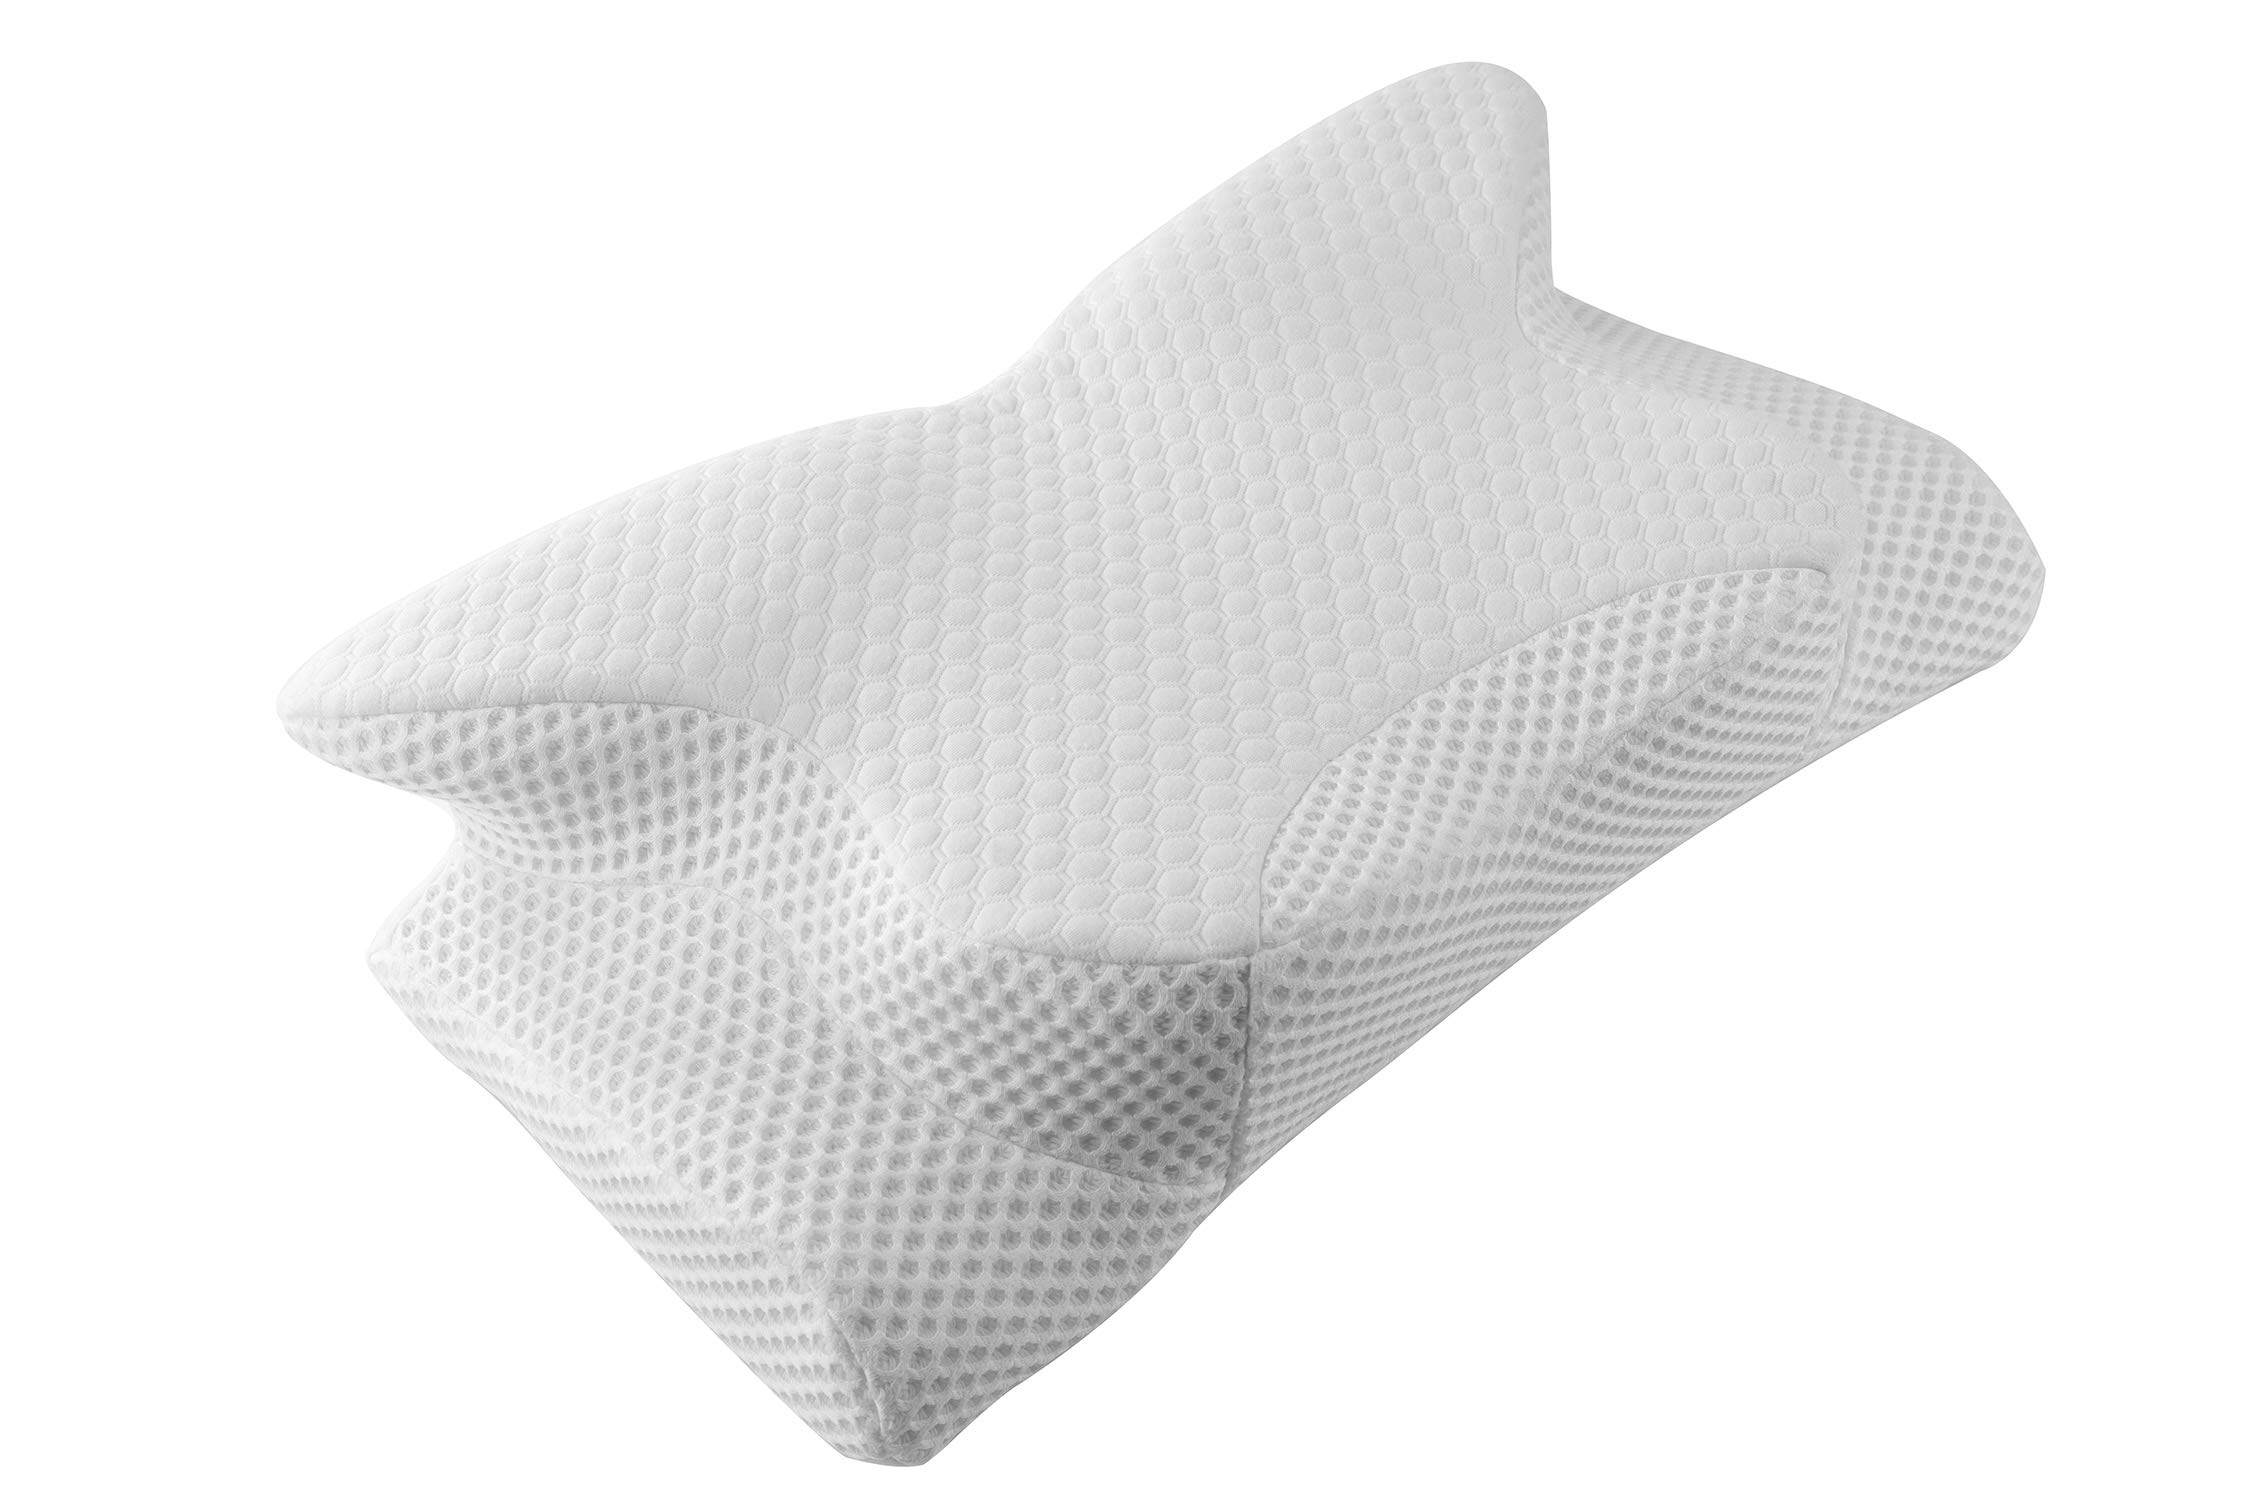 Cervical Pillow Contour Pillow for Neck and Shoulder Pain, Coisum Orthopedic Memory Foam Pillow Ergonomic Bed Pillow for Side Sleepers Back Sleepers, Neck Support Pillow with Hypoallergenic Pillowcase by Coisum